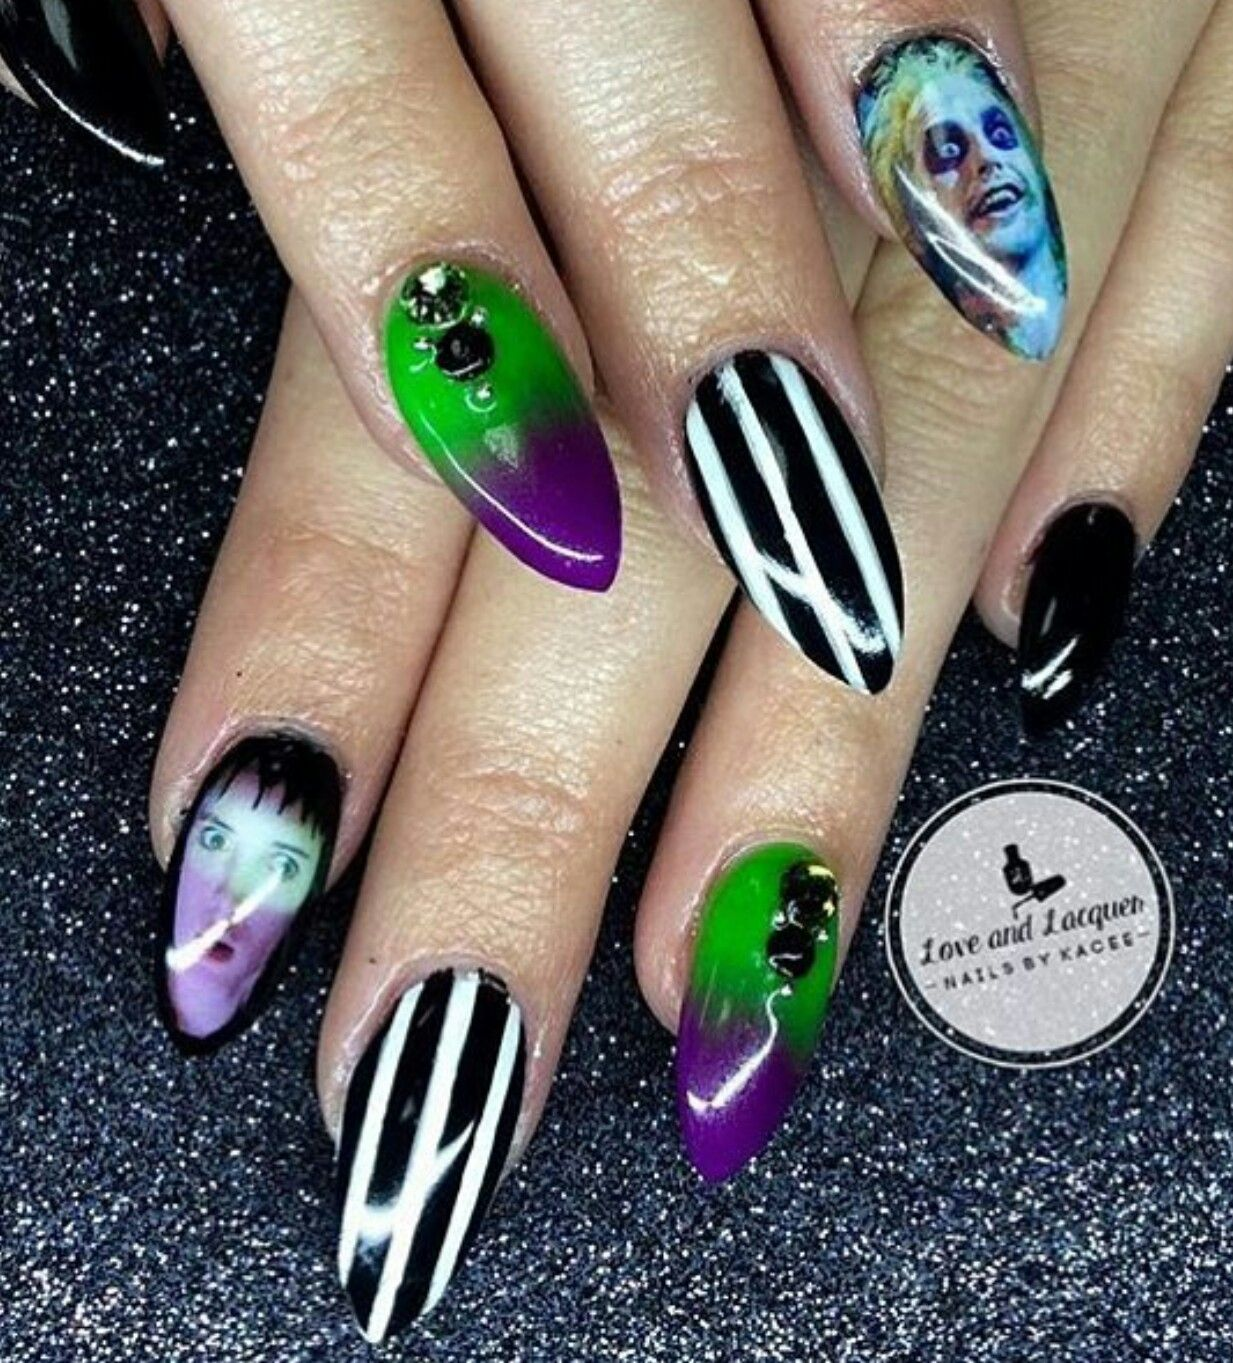 Creepy Cool Nail Art Beetlejuice Inspired Nailart Claws Mani Manicure Stiletto Macabre Naildecals Hallowee Goth Nails Horror Nails Halloween Nails